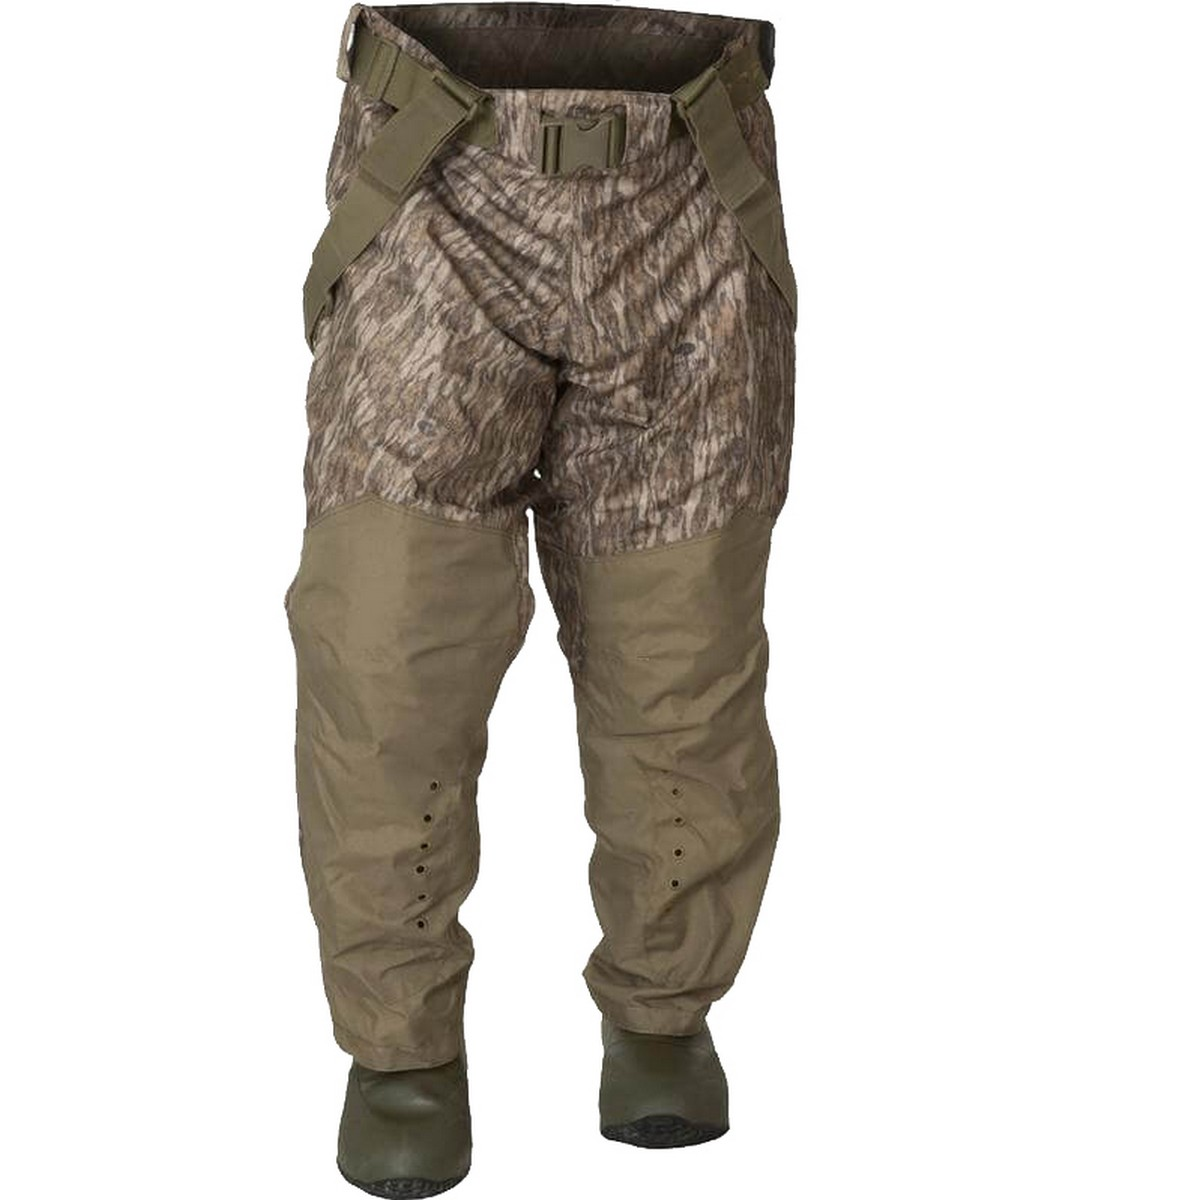 Banded Gear Redzone Insulated Waist High Wader 8r Bot